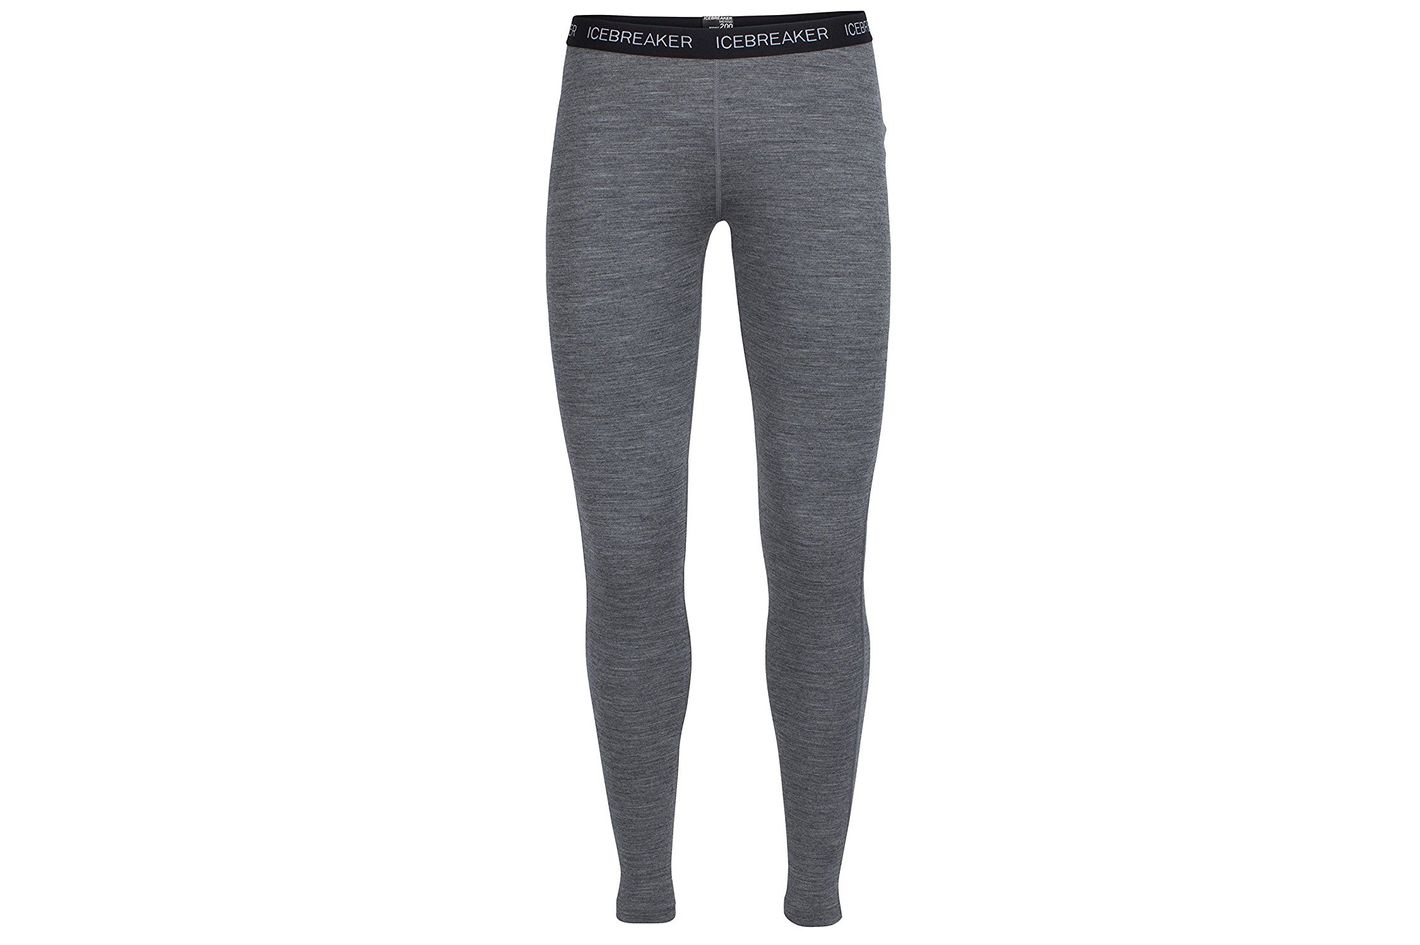 fb8d1c5a23061 35 Best Women's Running Shirts, Tights, and Clothes 2018